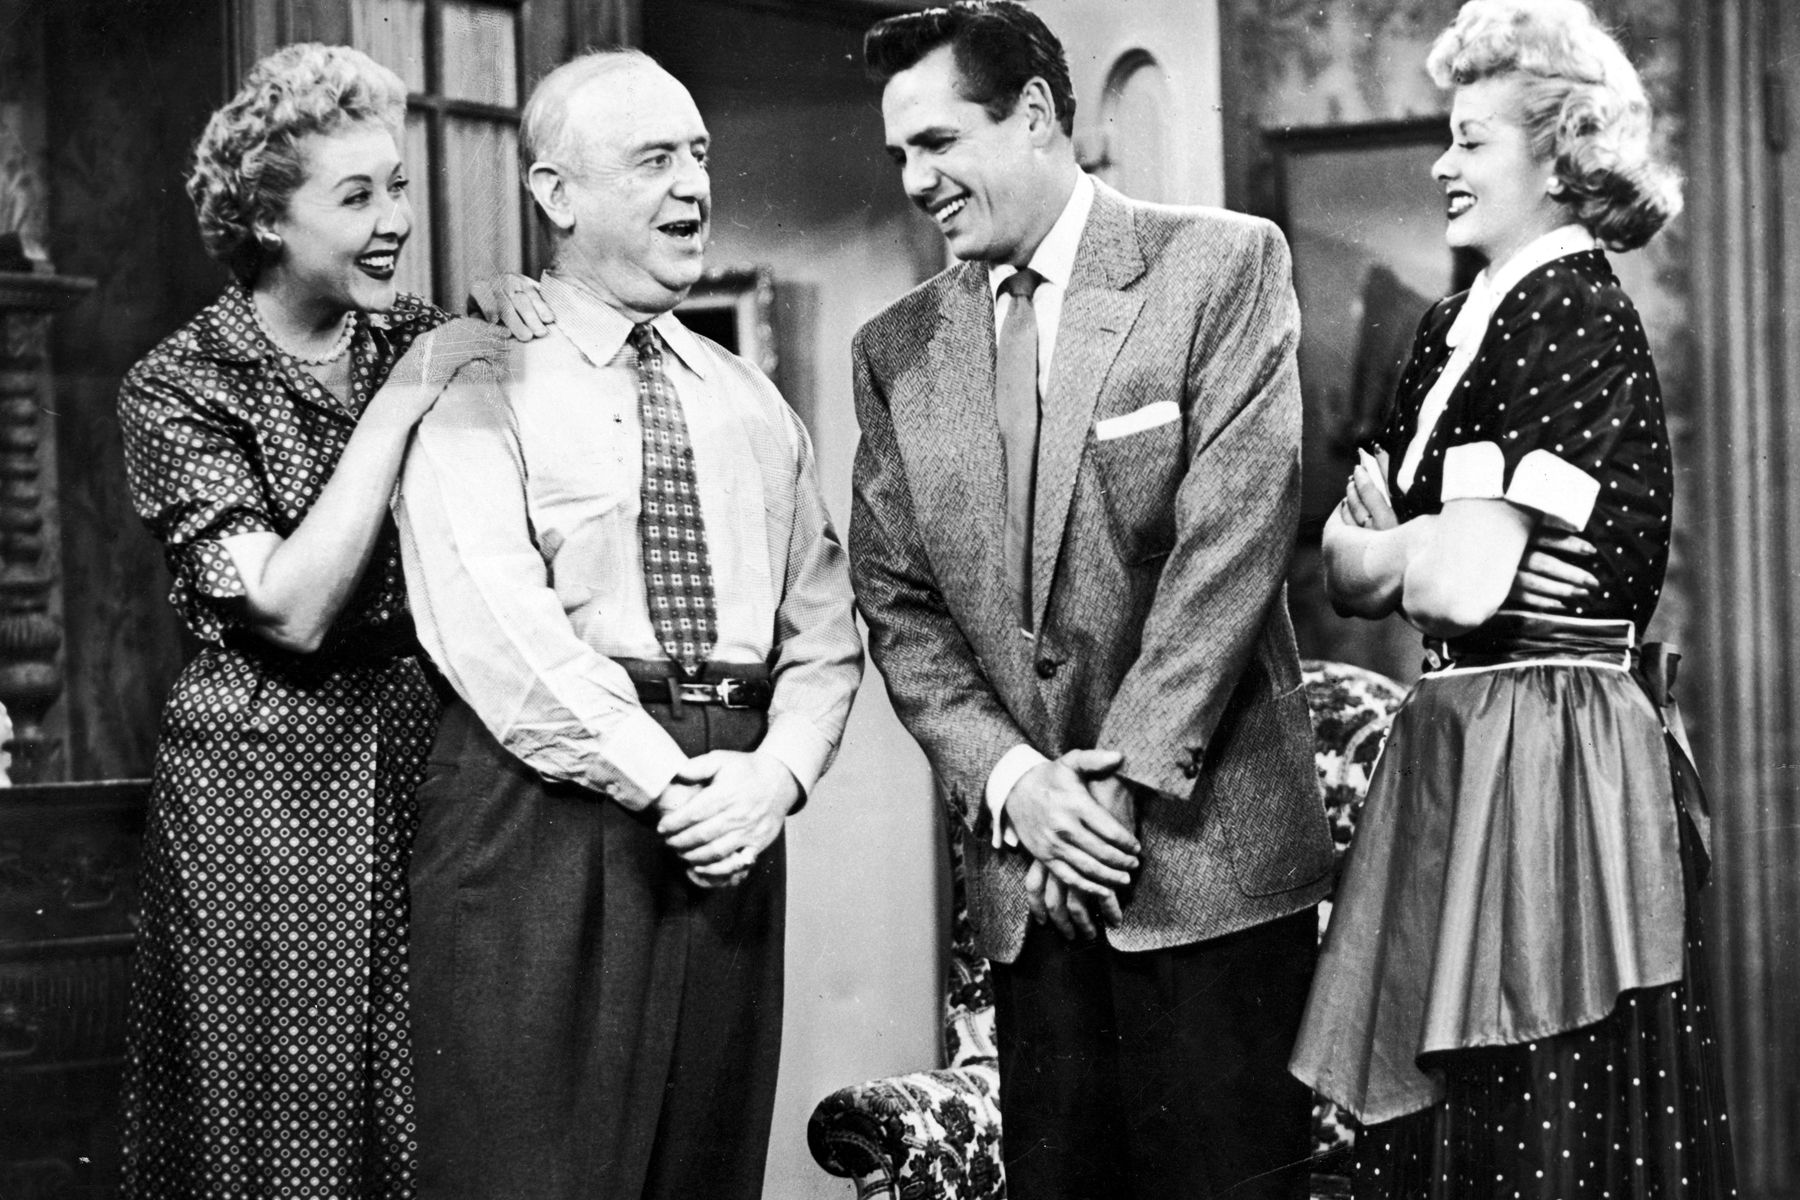 1956 When Elvis Presley Eared For The First Time On Ed Sullivan Show And Won An Aunce Share Of 82 6 Photo Courtesy Cbs I Love Lucy